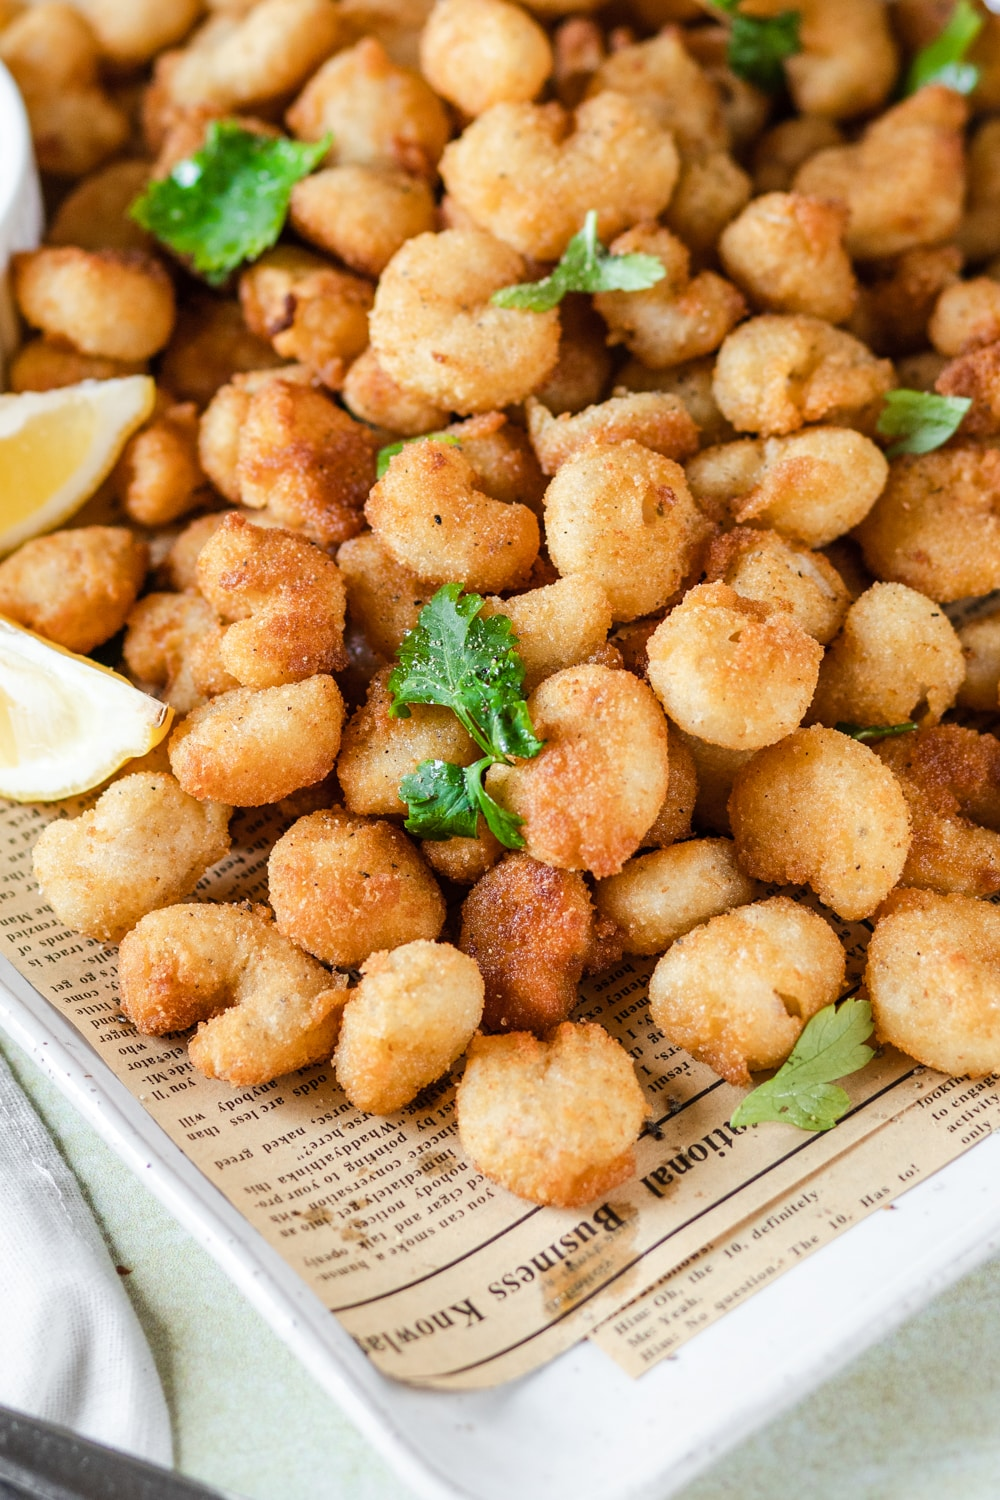 Popcorn shrimp on top of brown newspaper on a white square plate with the corner of the plate showing.